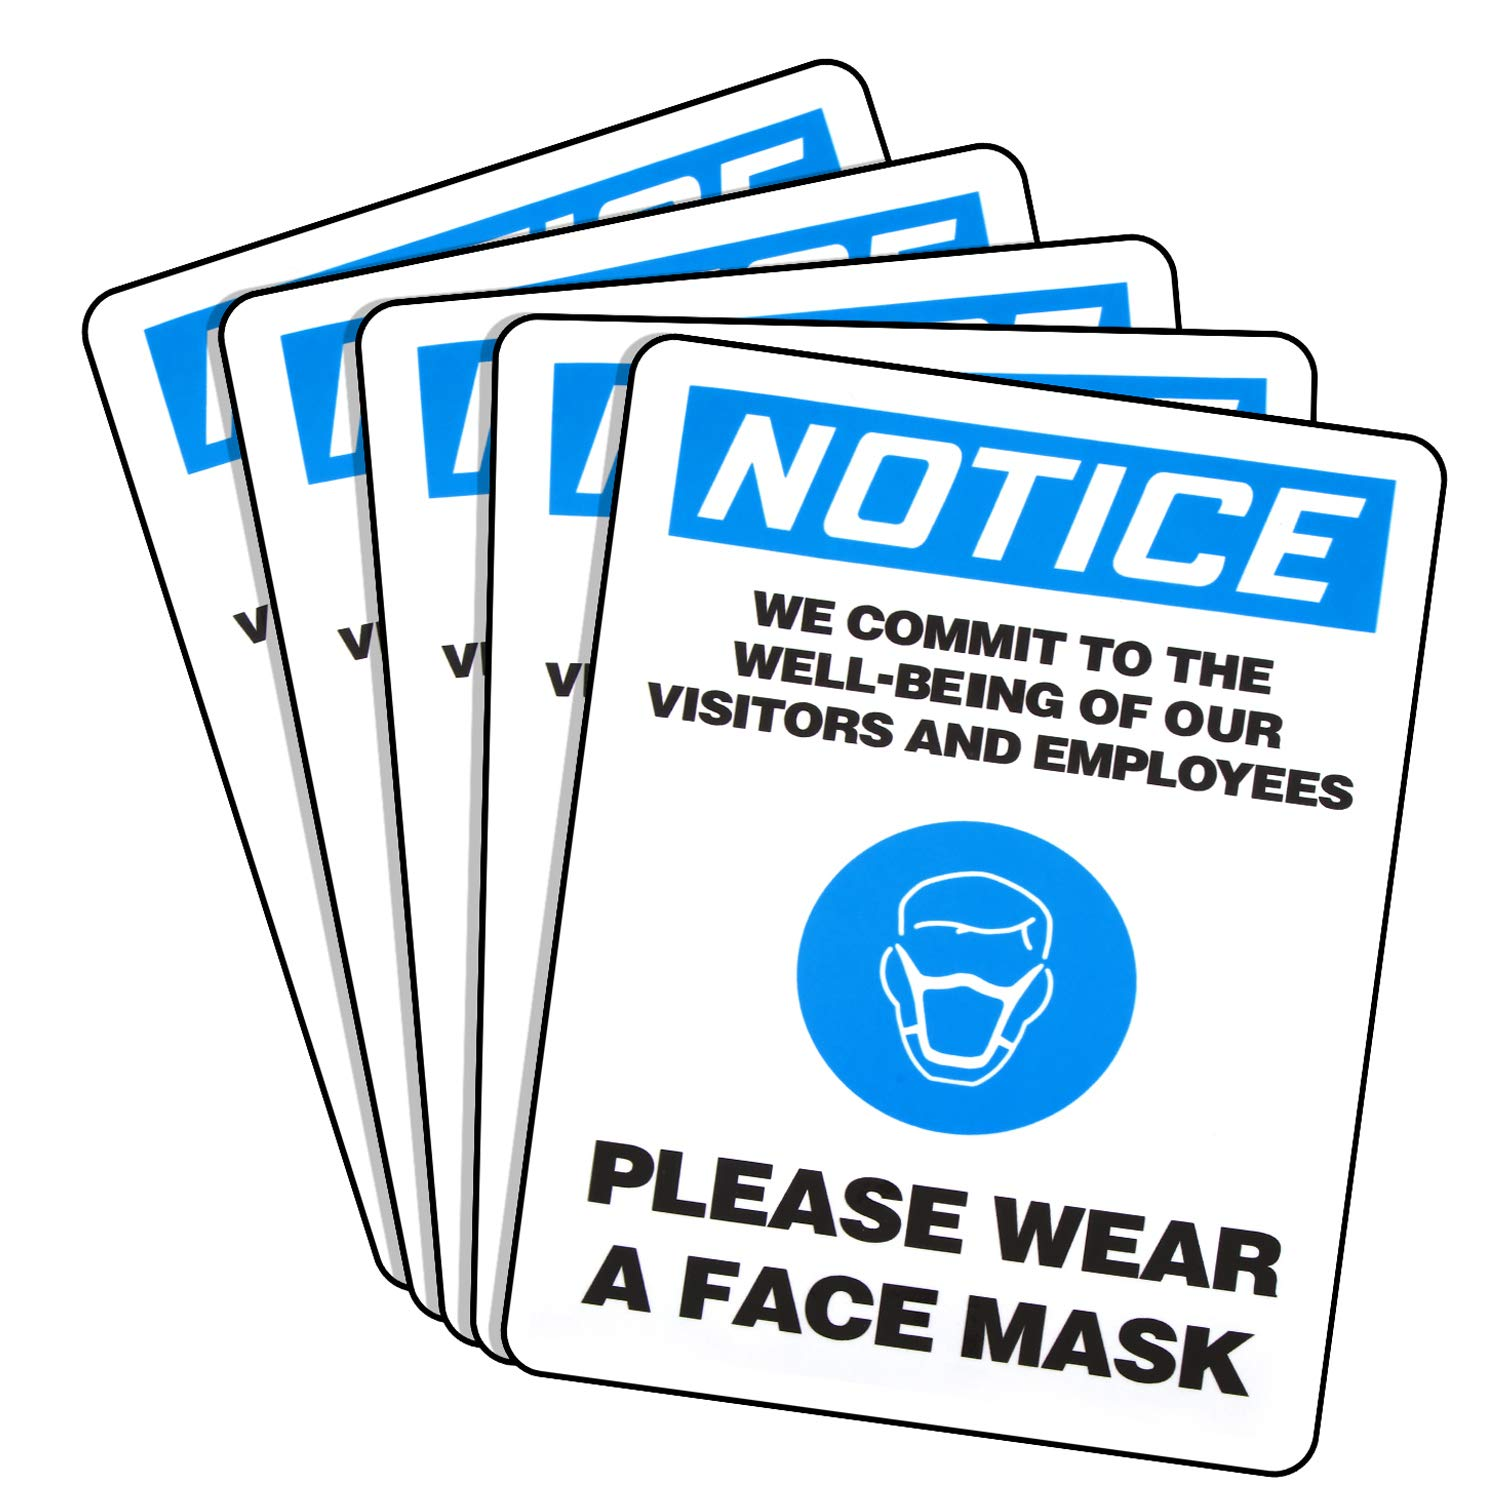 5 Pieces Face Mask Sign Stickers Please Wear a Face Mask Sign Adhesive Vinyl 10 x 7 Inches Peel and Stick Window Door Sign Decal for Company, Supermarket, Mall, Public Places